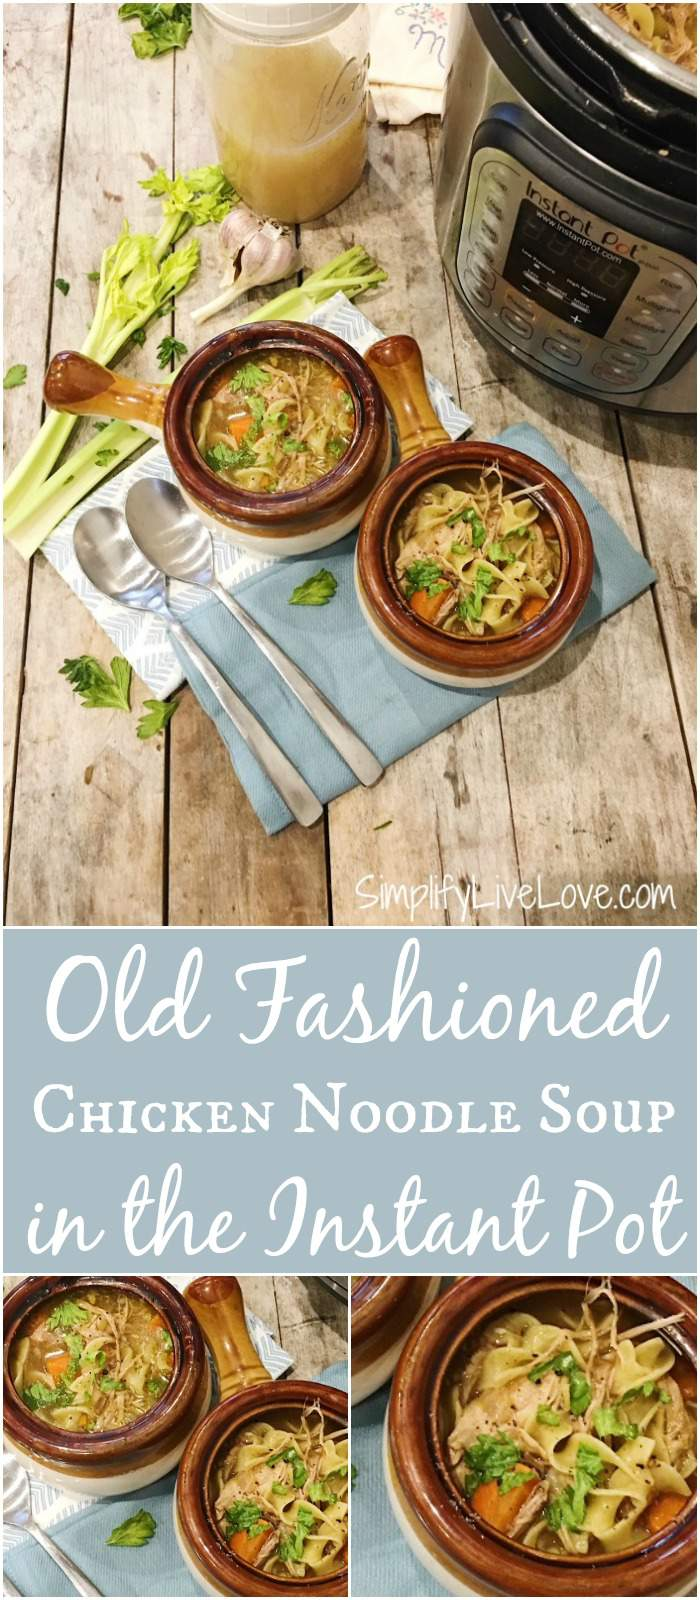 Looking for a good old fashioned chicken noodle soup Instant Pot recipe? Look no further! This easy, immune boosting recipe will be a household hit! Four minutes under pressure is all it takes!